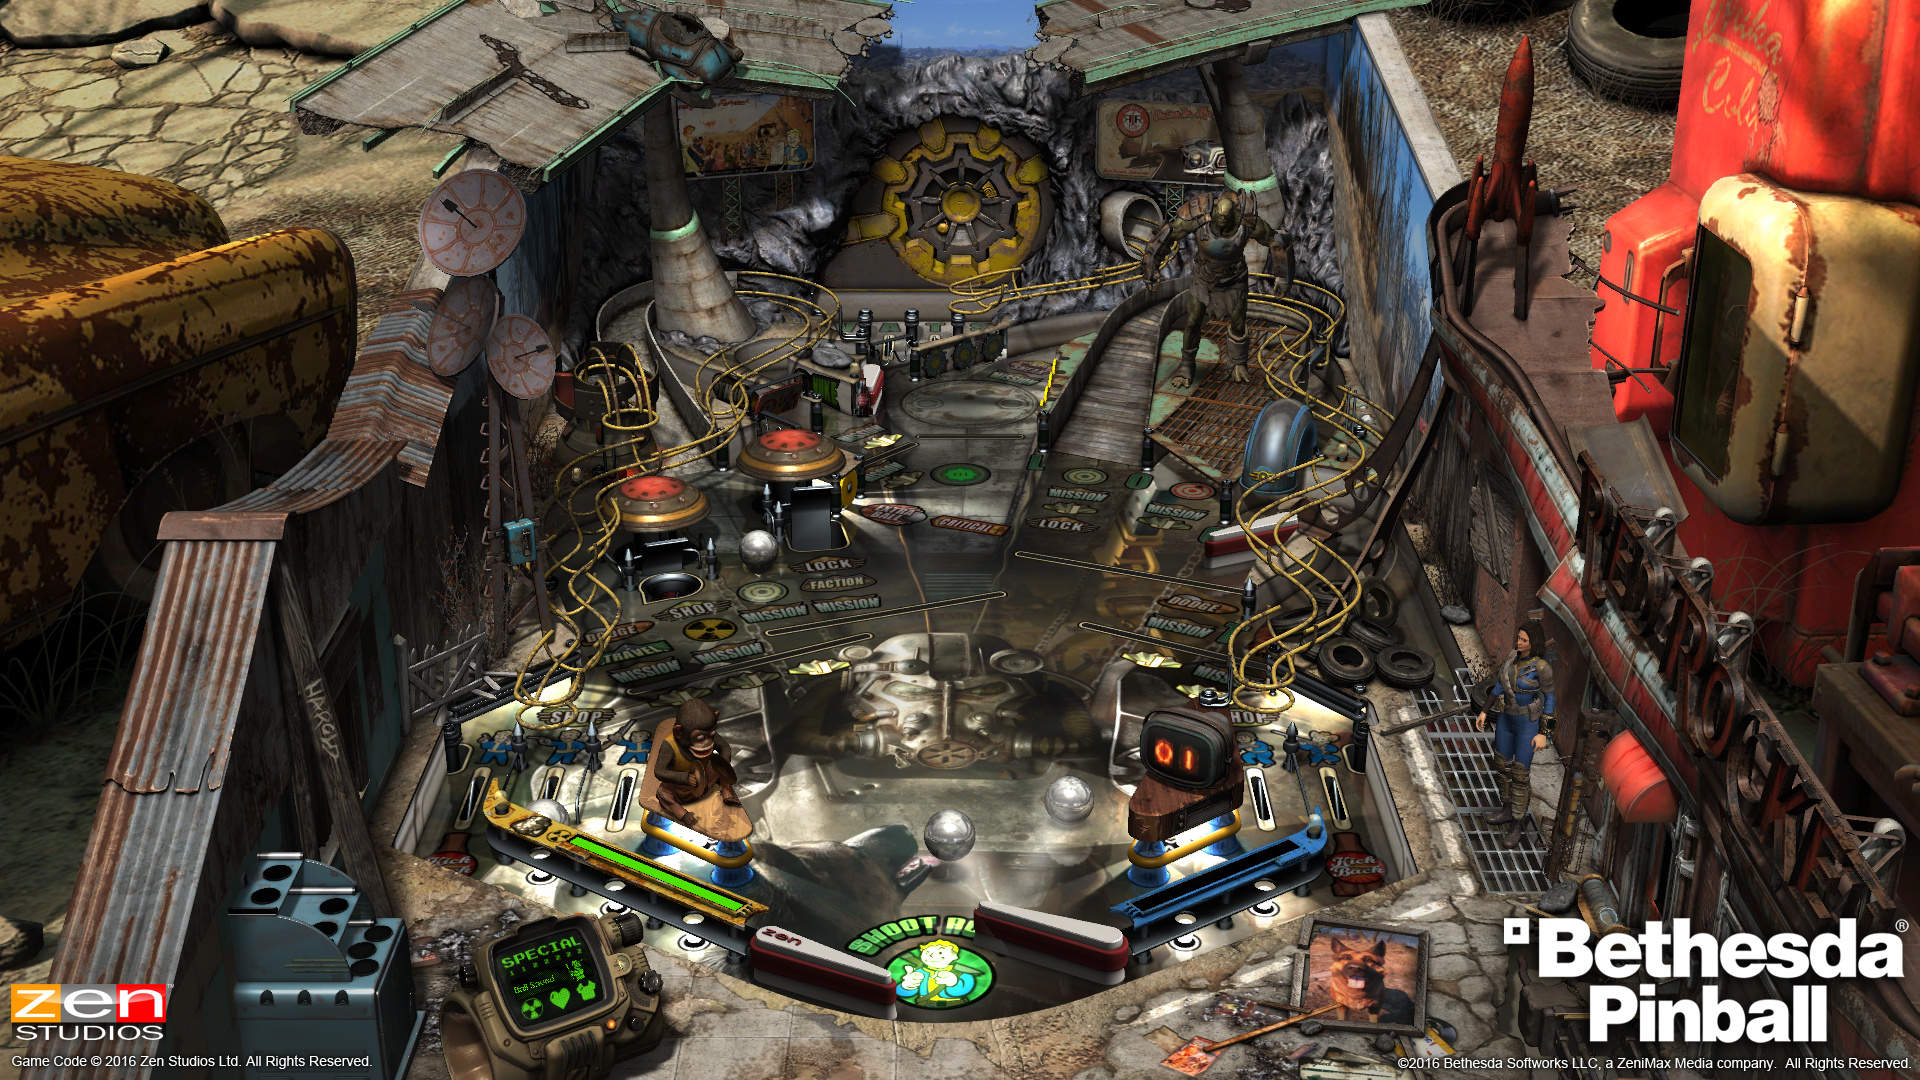 Hands-On: Checking Out Pinball FX3's Bethesda-Themed Tables